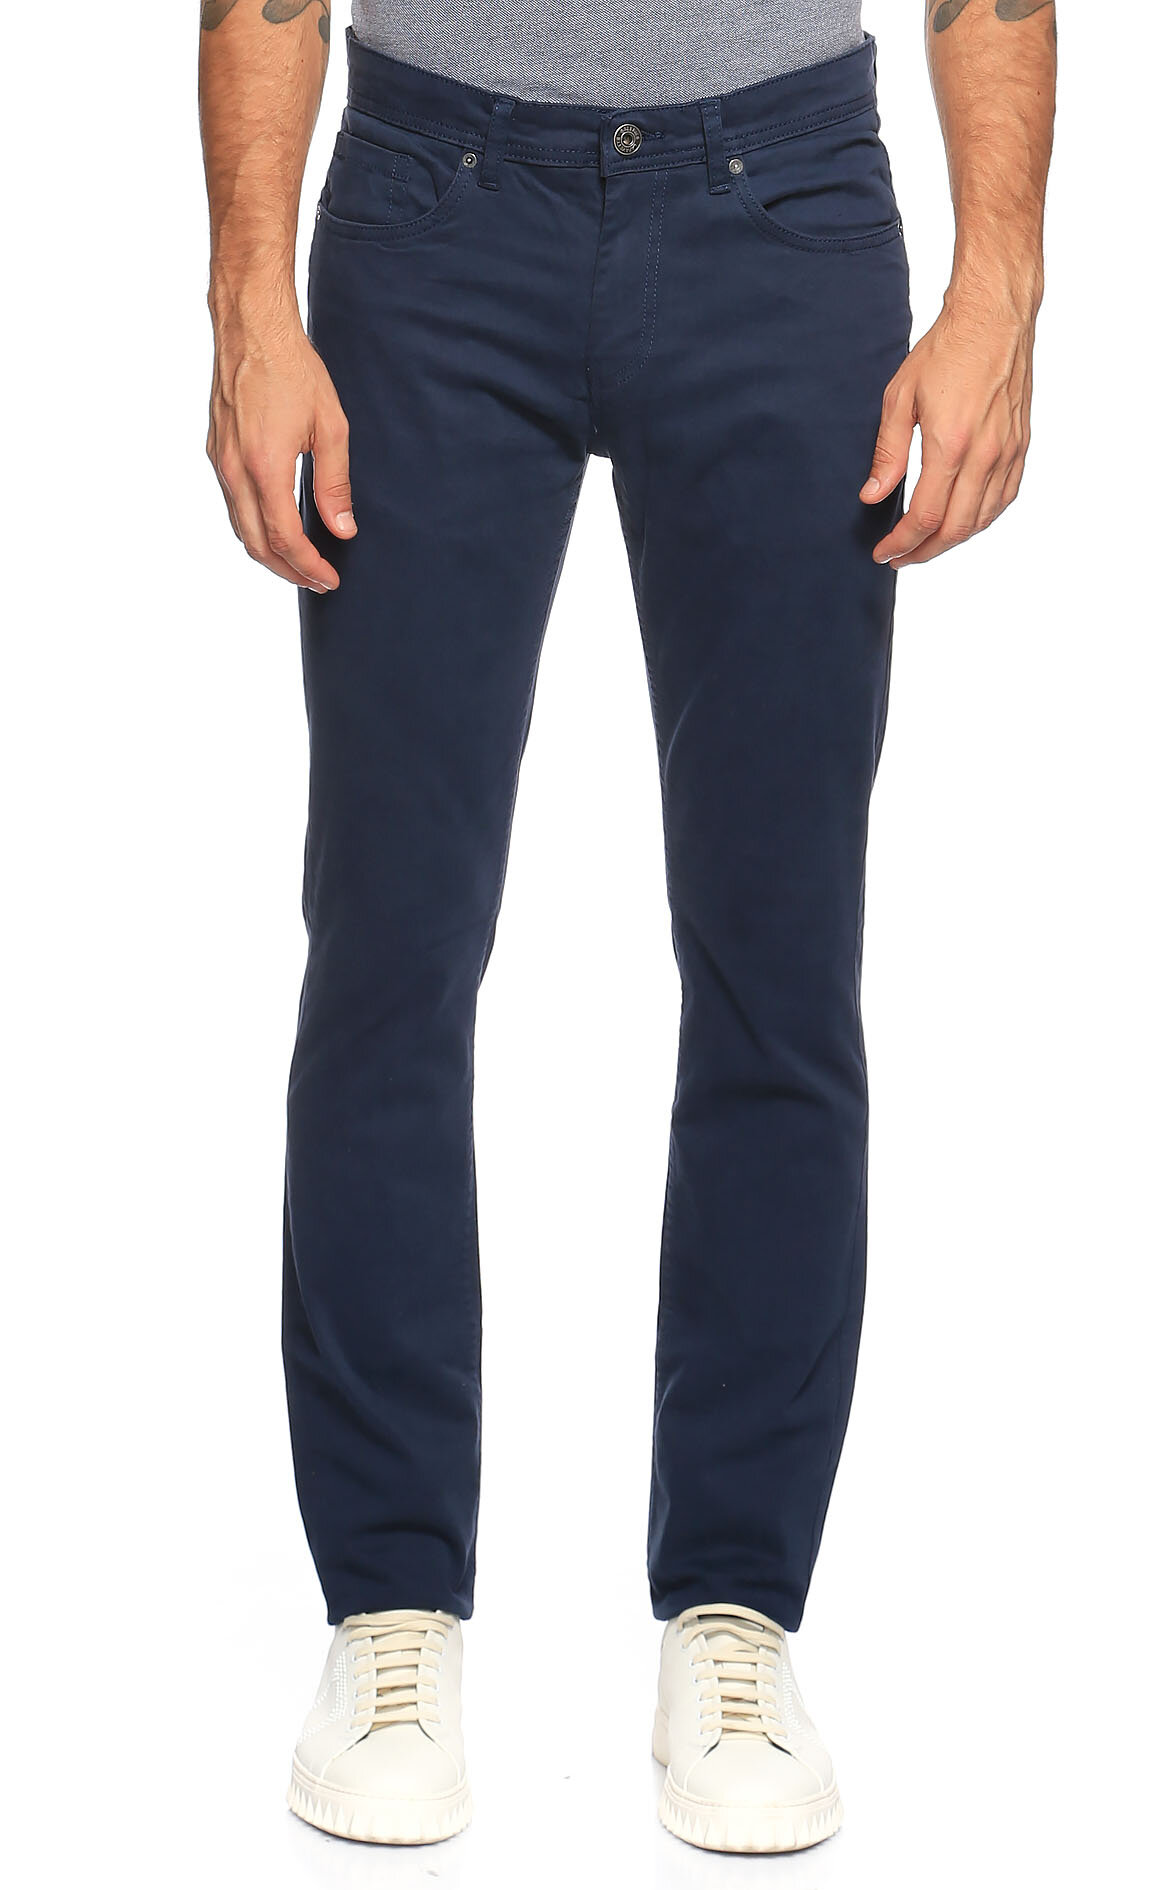 Casual Men-Casual Men Lacivert Pantolon